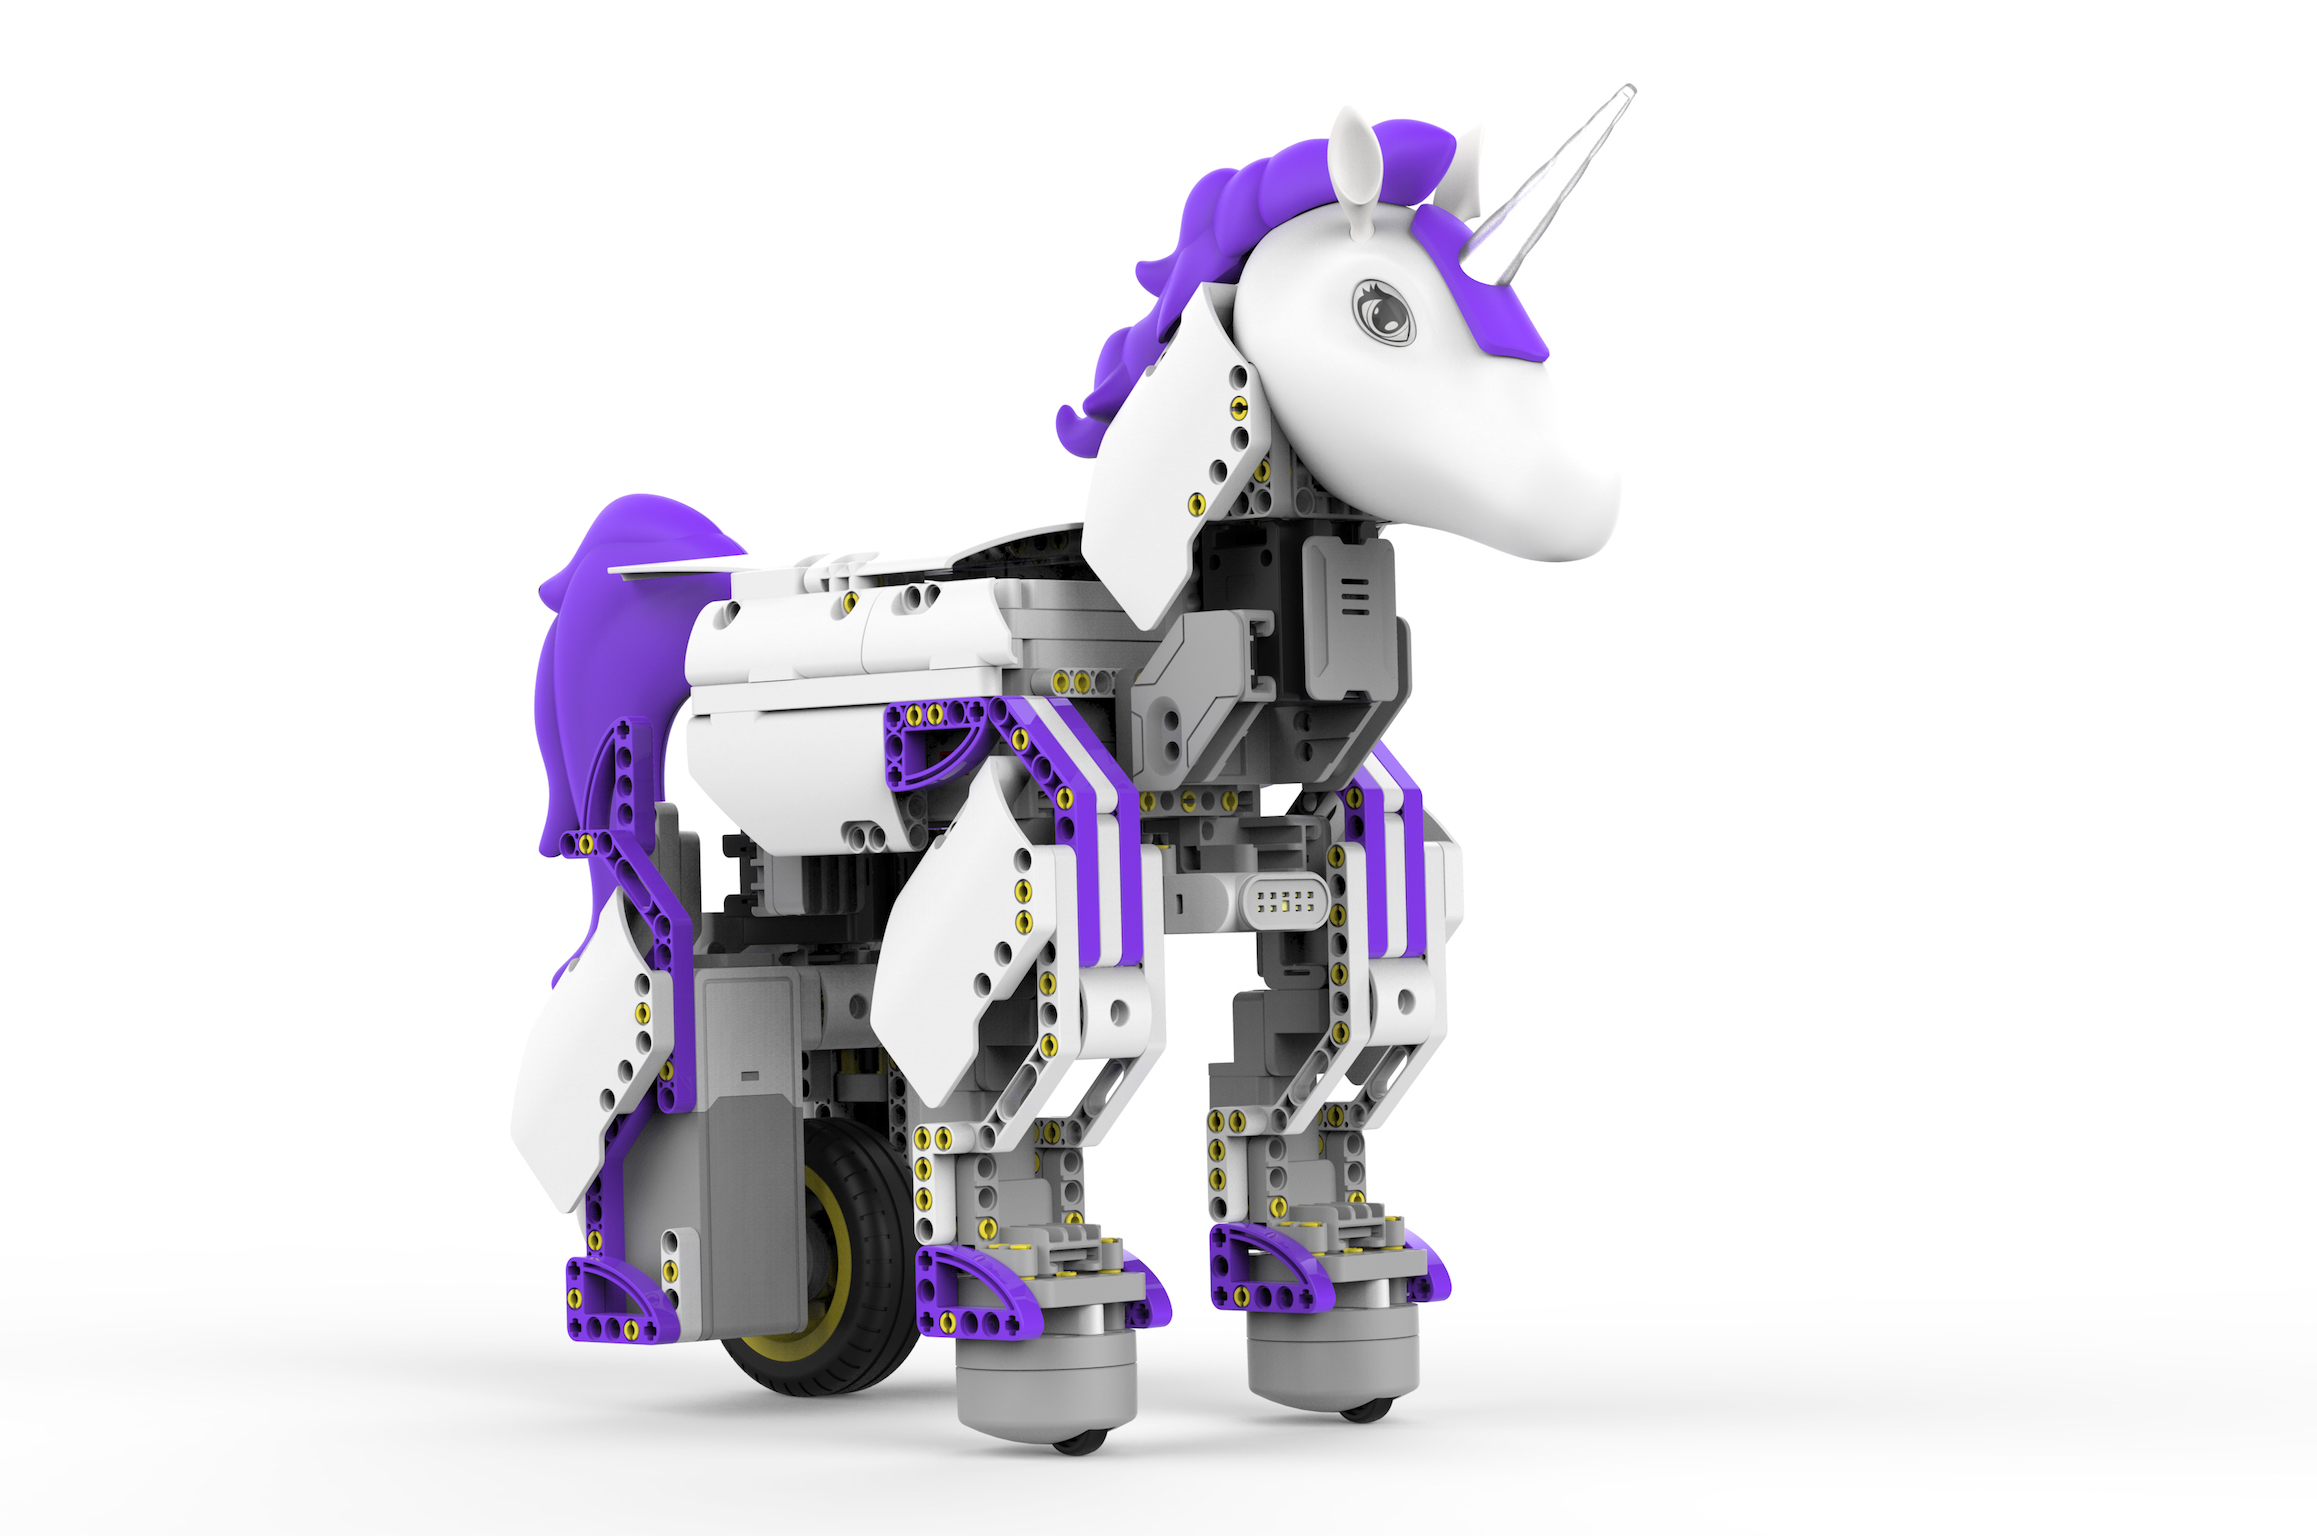 UnicornBot will help kids learn STEM and coding.